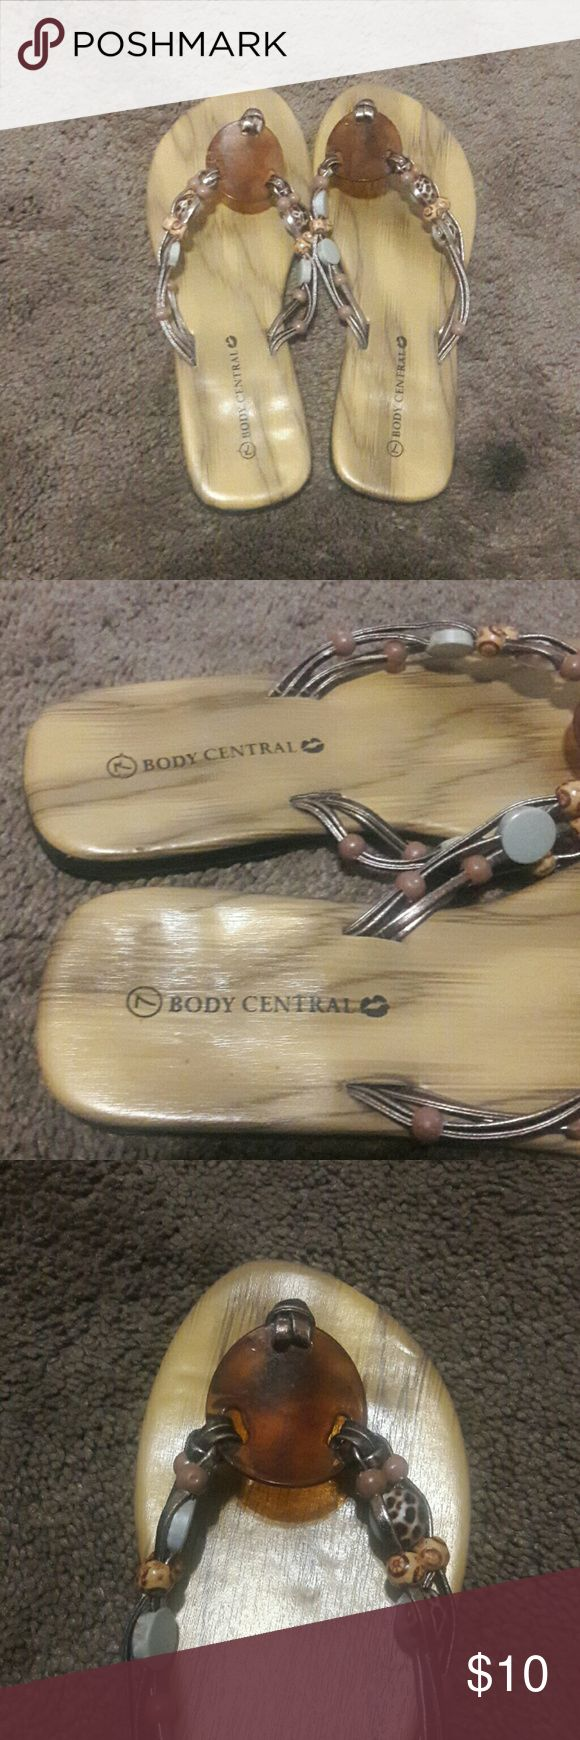 BODY CENTRAL FLIP FLOP SANDALS BODY CENTRAL FLIP FLOP SANDALS, size 7 in very good condition, with different colors it make then so cute. BUNDLE AND SAVE 20% OPEN TO OFFERS 🤗 Body Central Shoes Sandals